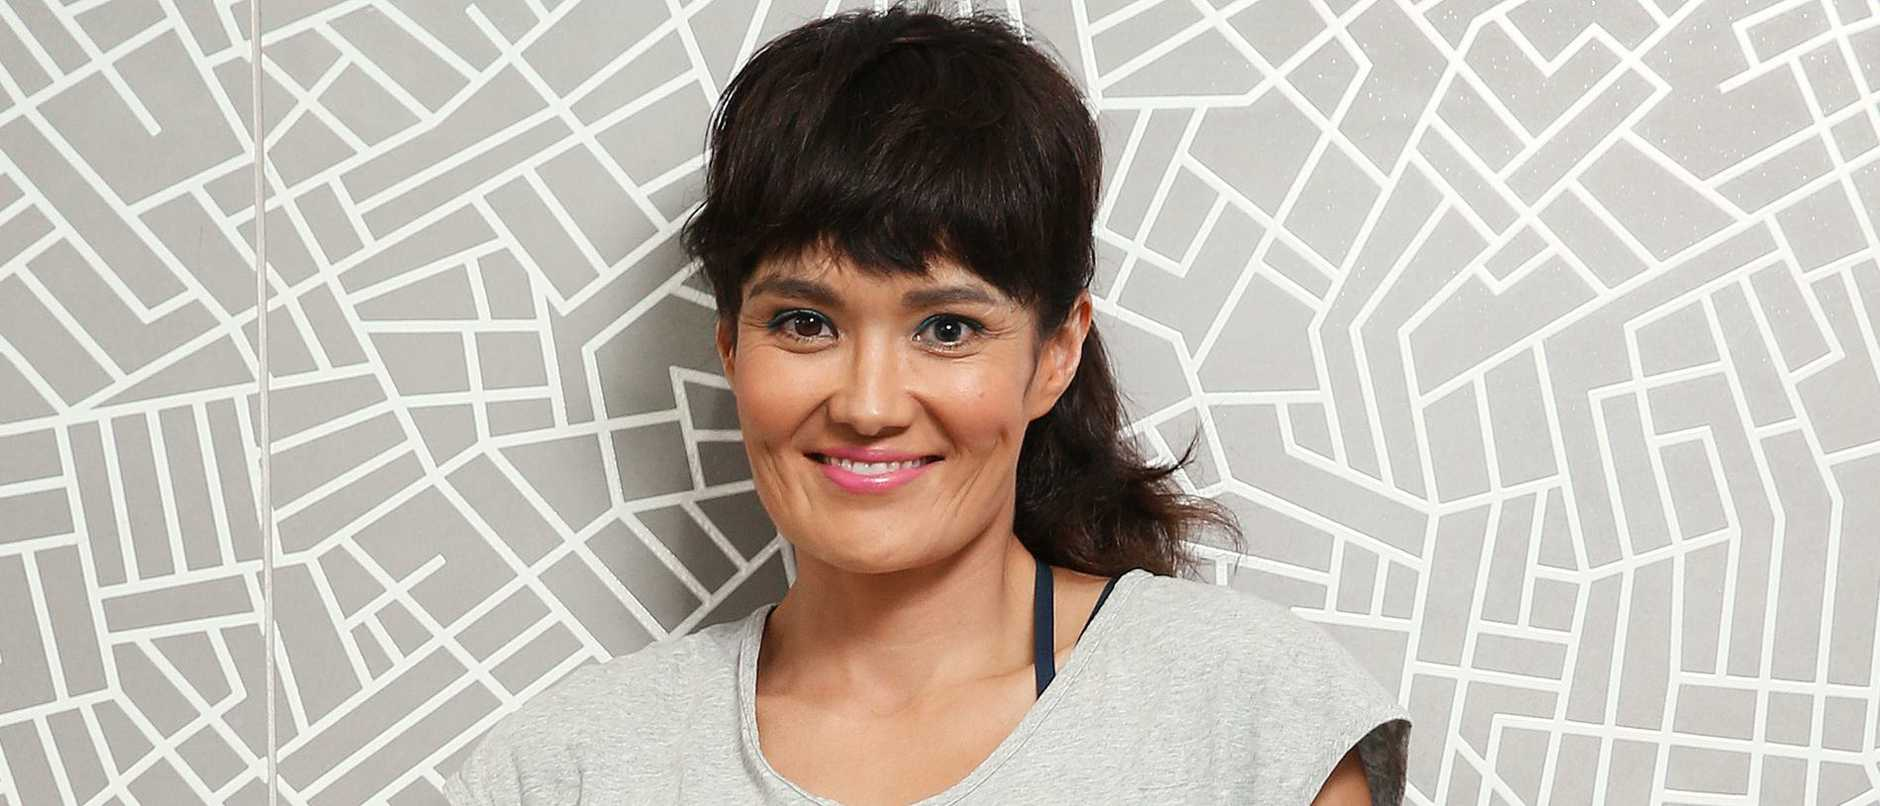 Former TV host Yumi Stynes is releasing a children's book about consent, which she hopes will be added to school reading lists.